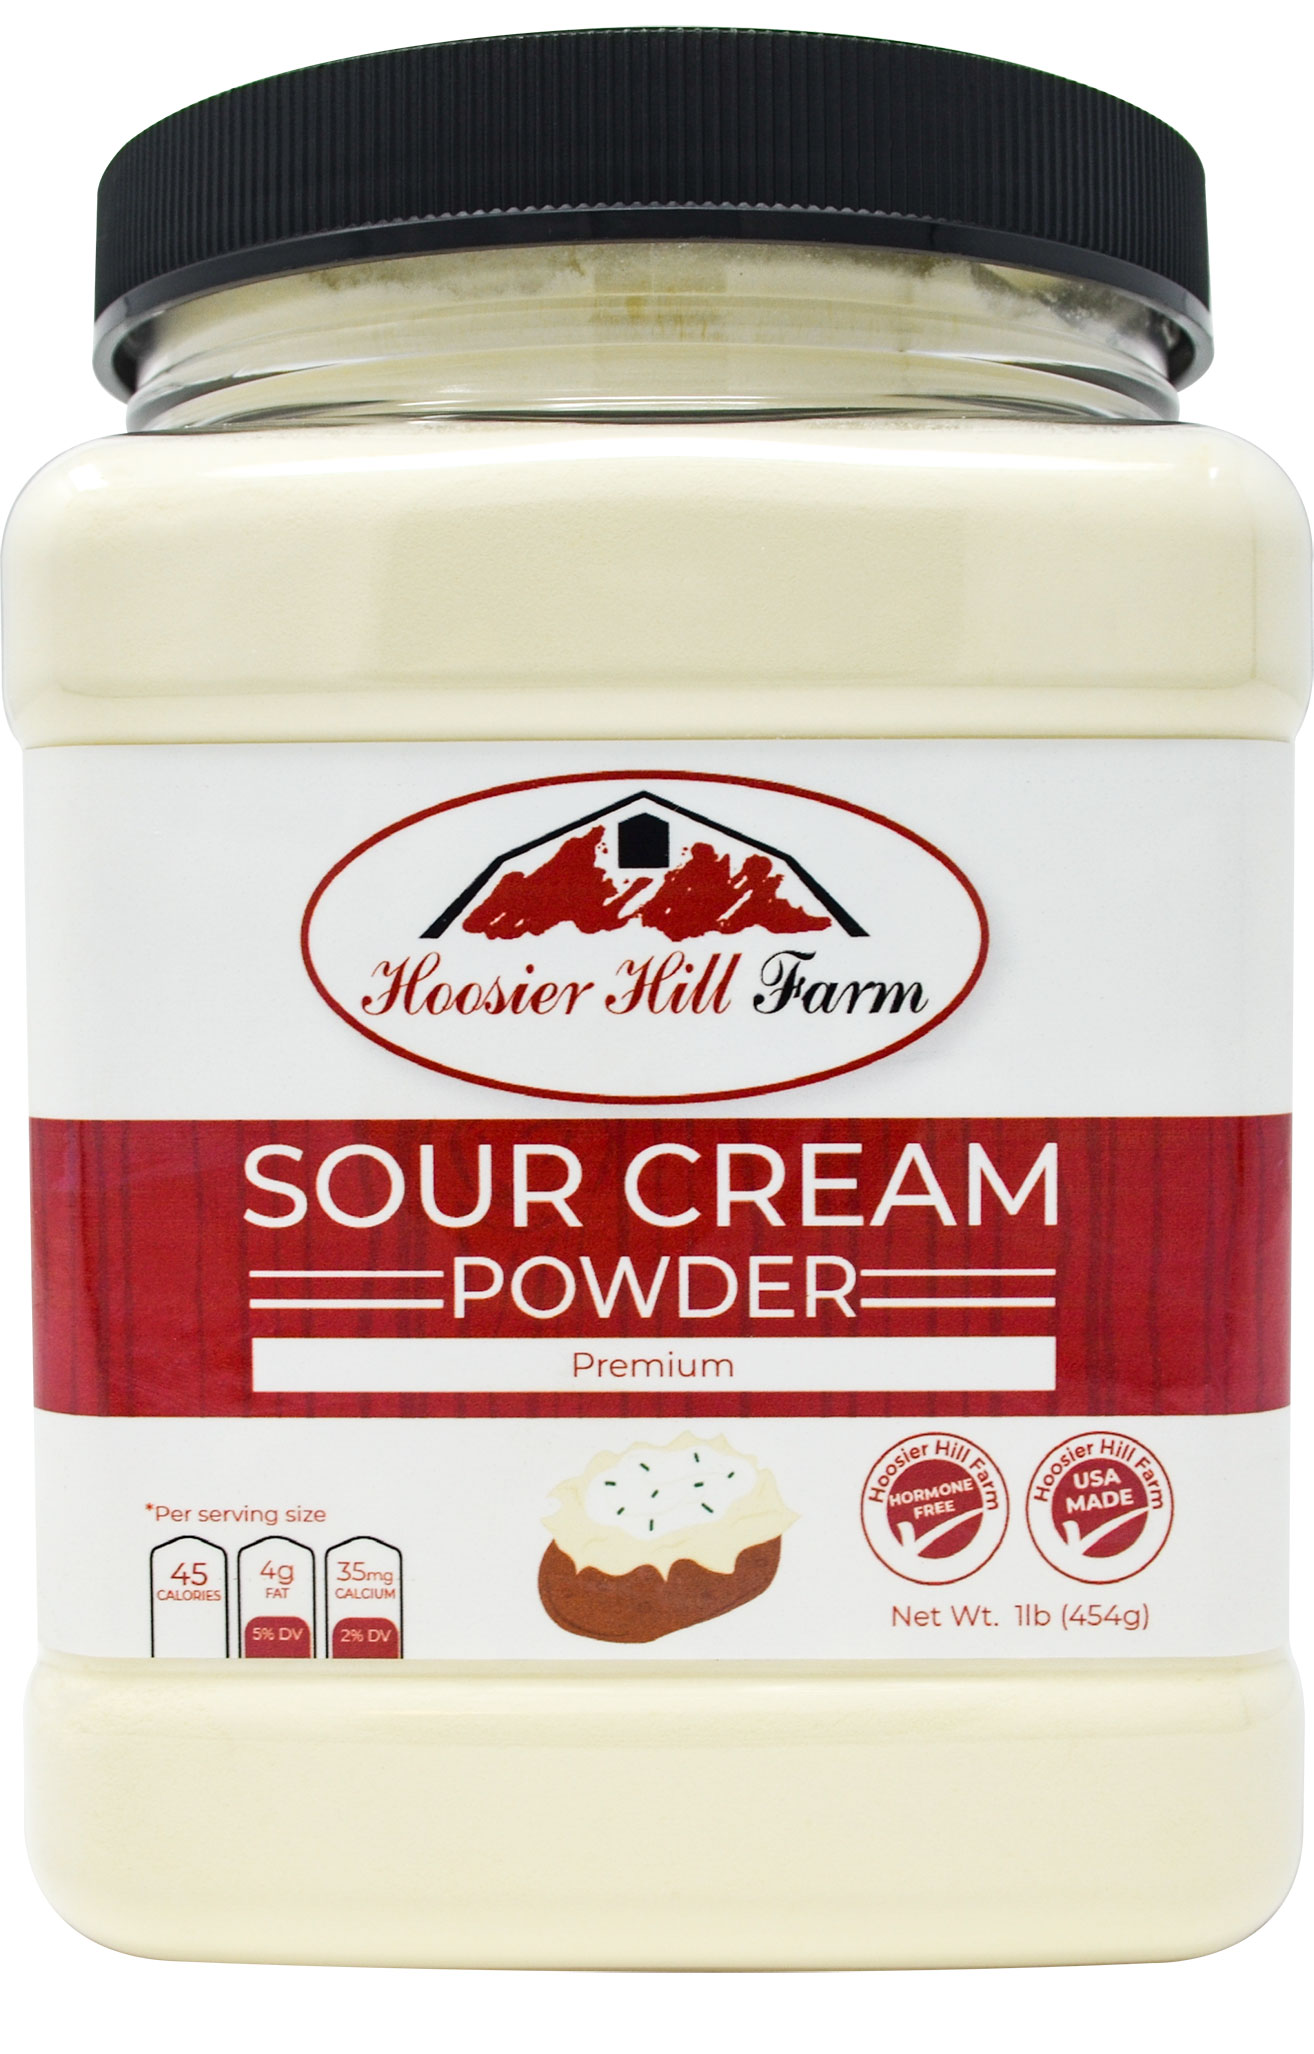 Hoosier Hill Farm Sour Cream Powder, 1 lb.